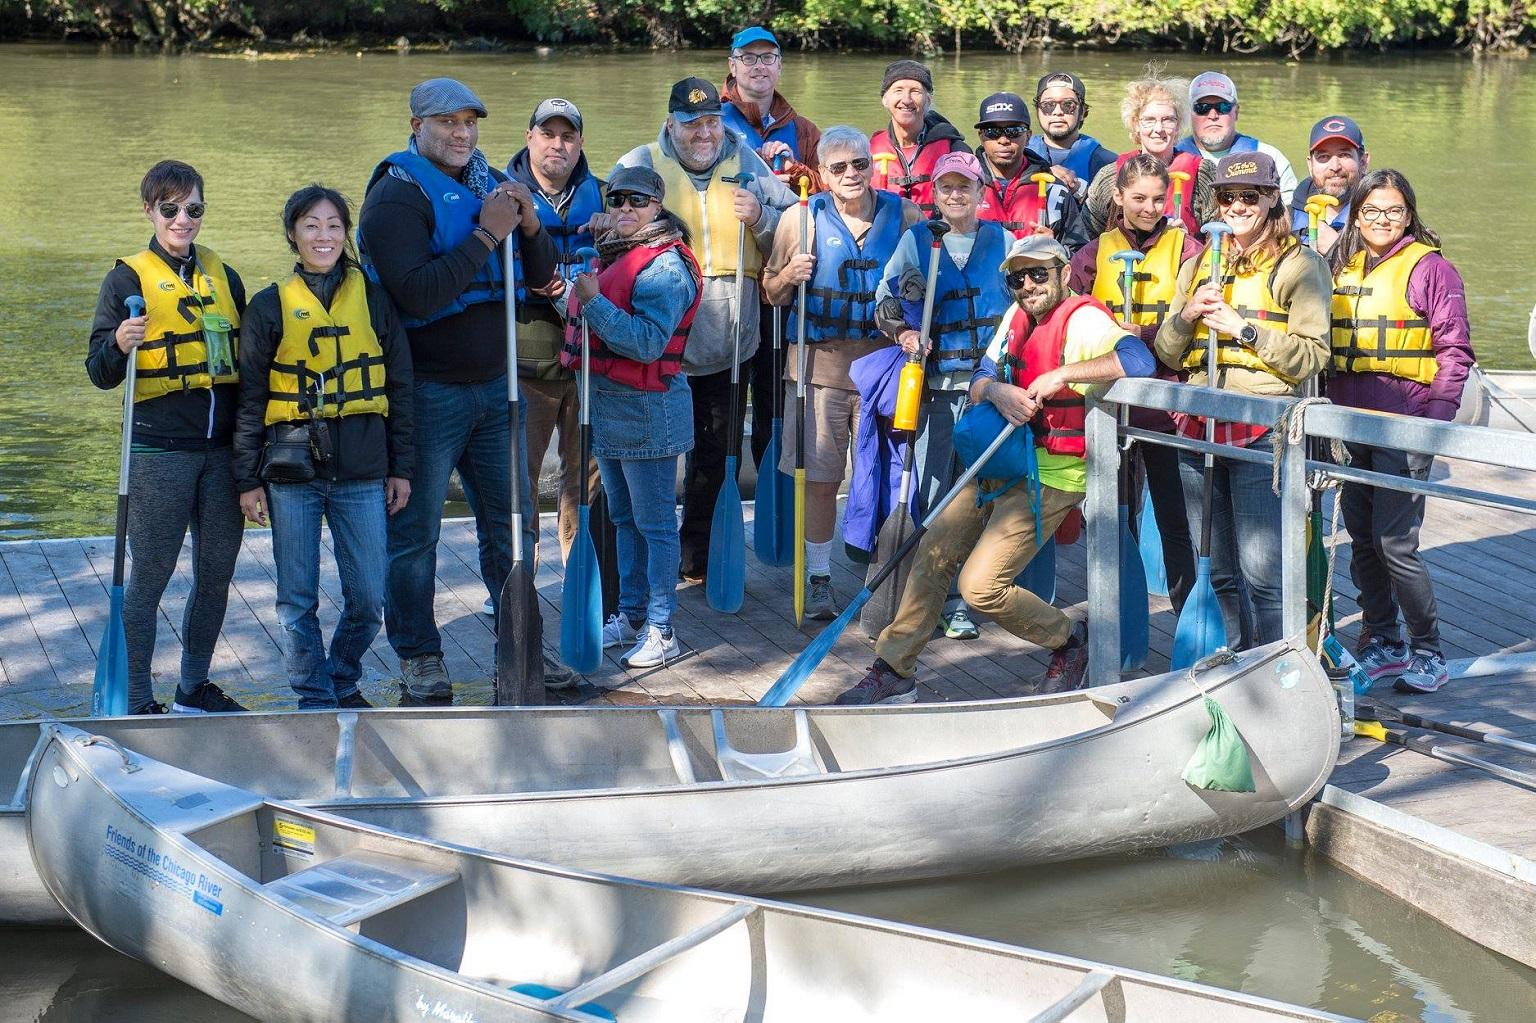 Residents and community leaders pose for a photo during a recent kick-off paddling event for the new Lathrop Riverfront Group. (Courtesy Metropolitan Water Reclamation District of Greater Chicago)